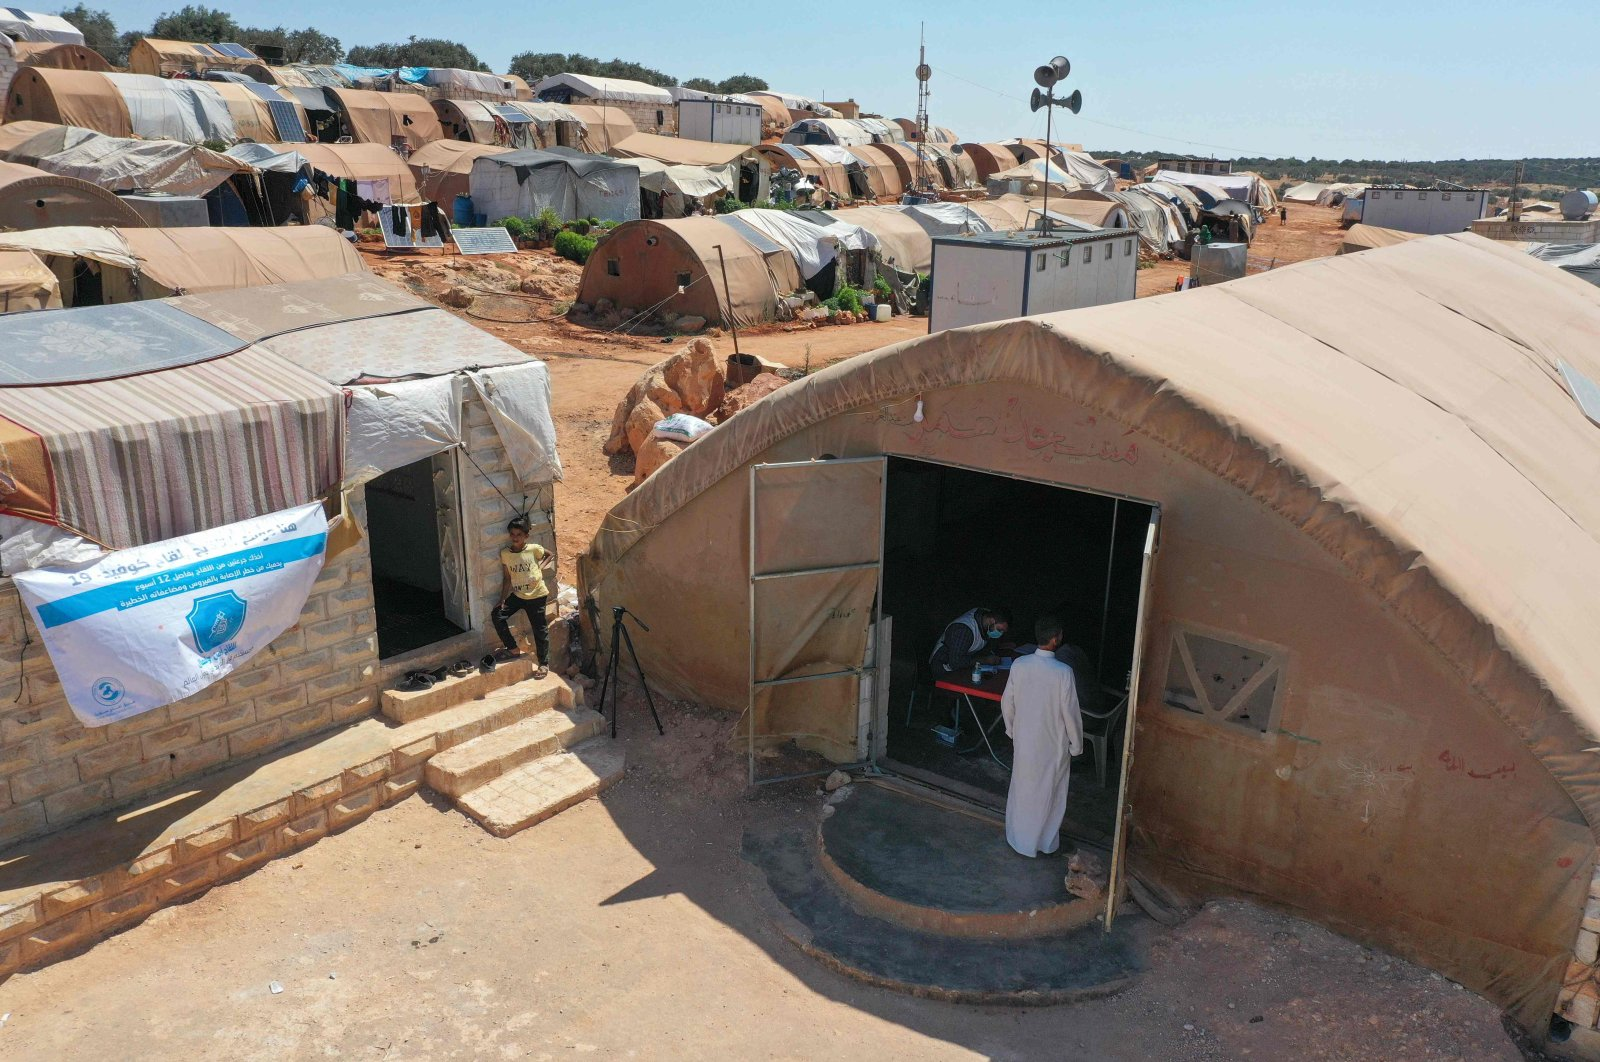 People enter a tent turned into a vaccination center at a camp for the internally displaced near Marret Misrin town, in northwestern Syria's Idlib, Syria, June 14, 2021. (AFP Photo)